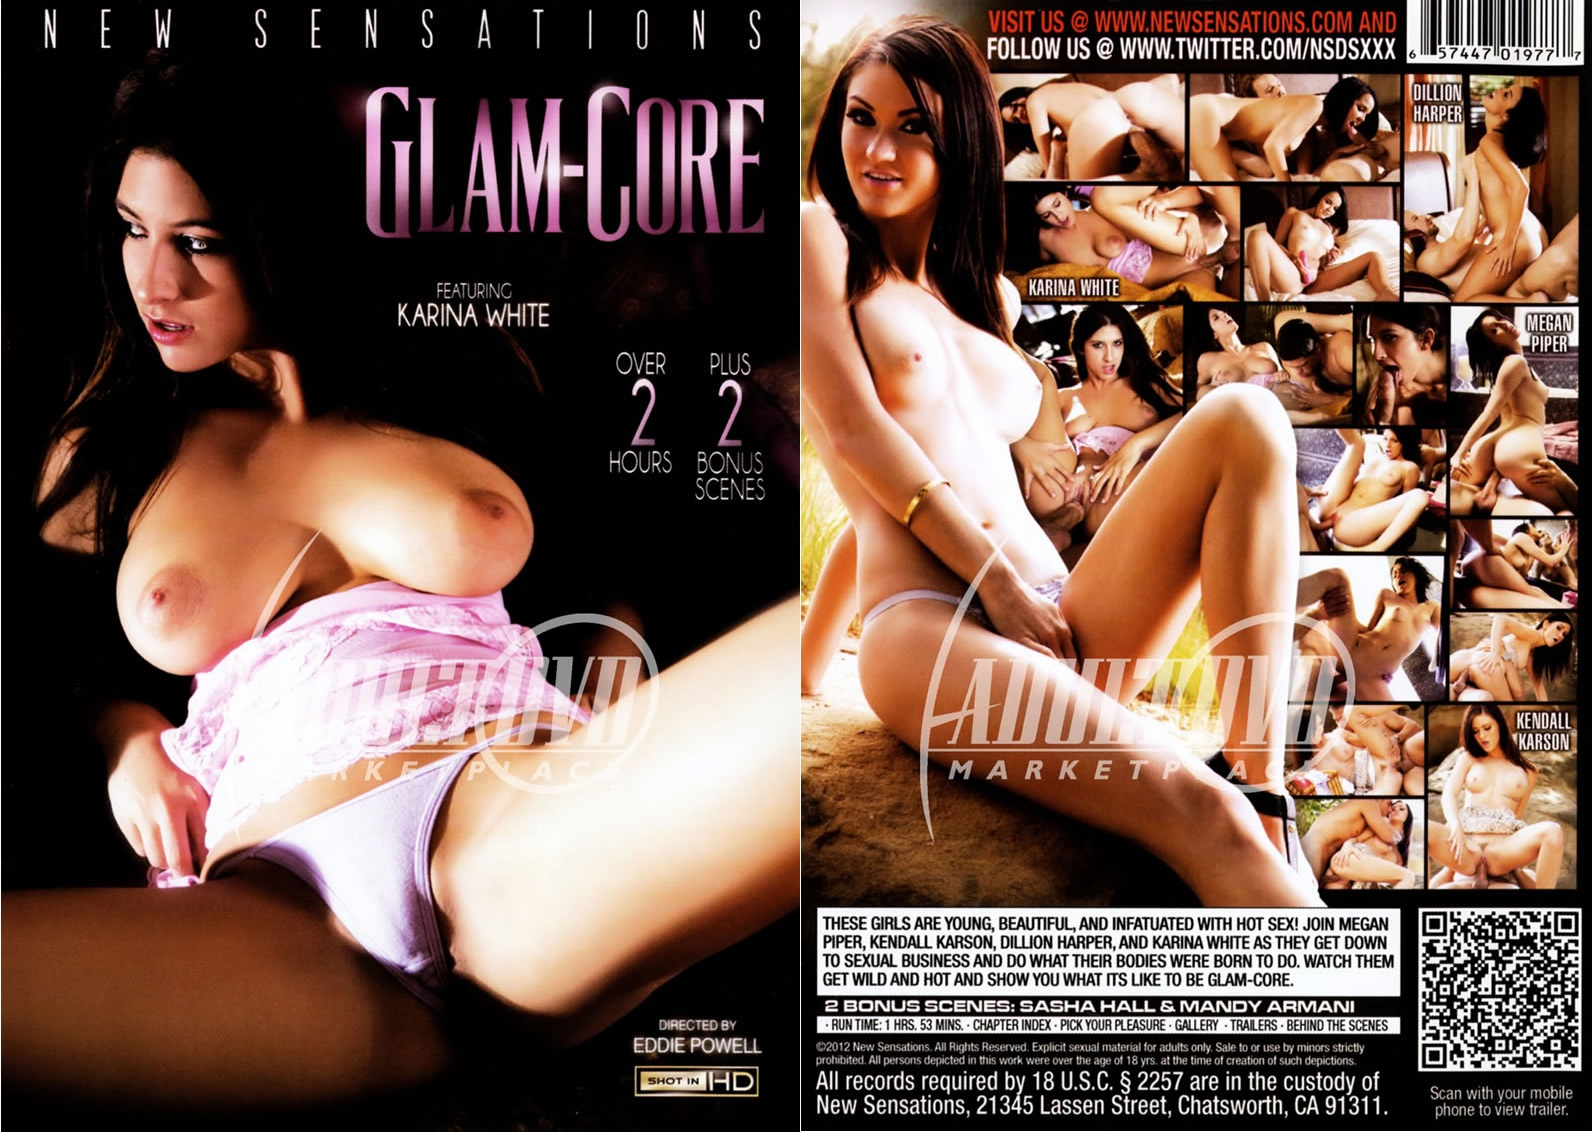 Glam Core XXX DVDRiP   DivXfacTory Porn Videos, Porn clips and Hottest Porn Videos from Porn World